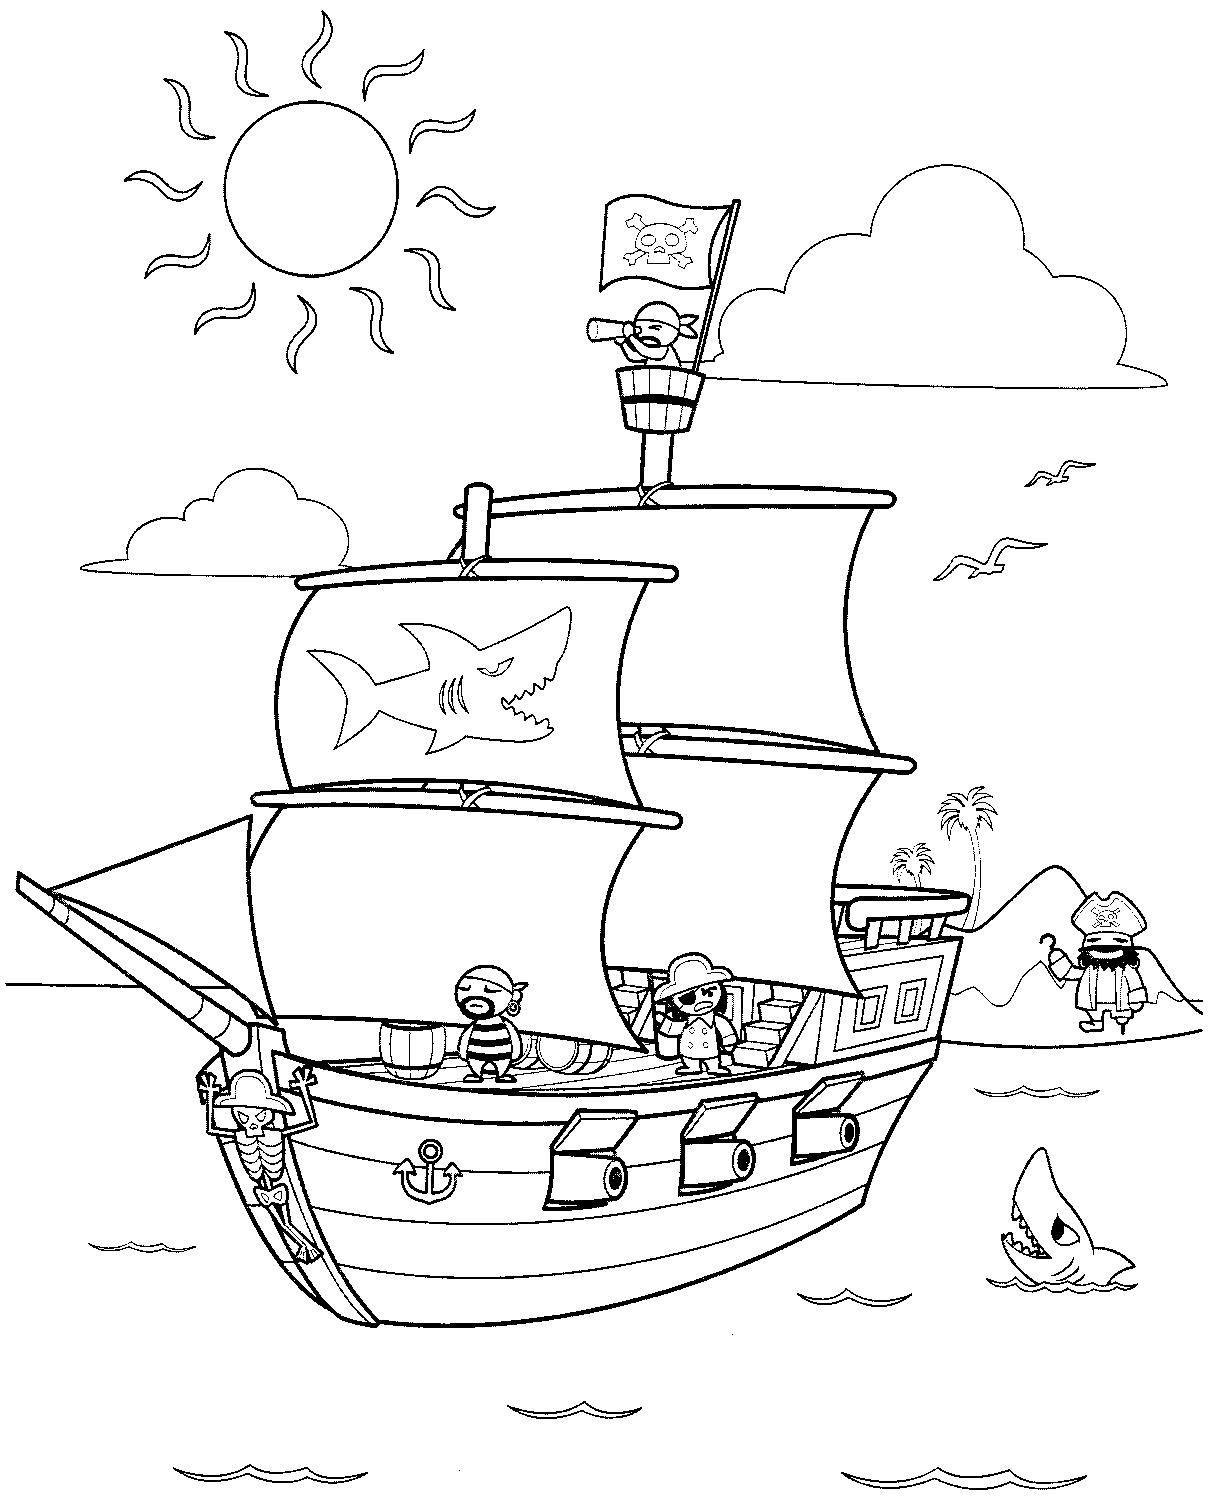 pirate ship coloring pages pirate ship coloring pages to download and print for free pirate ship pages coloring